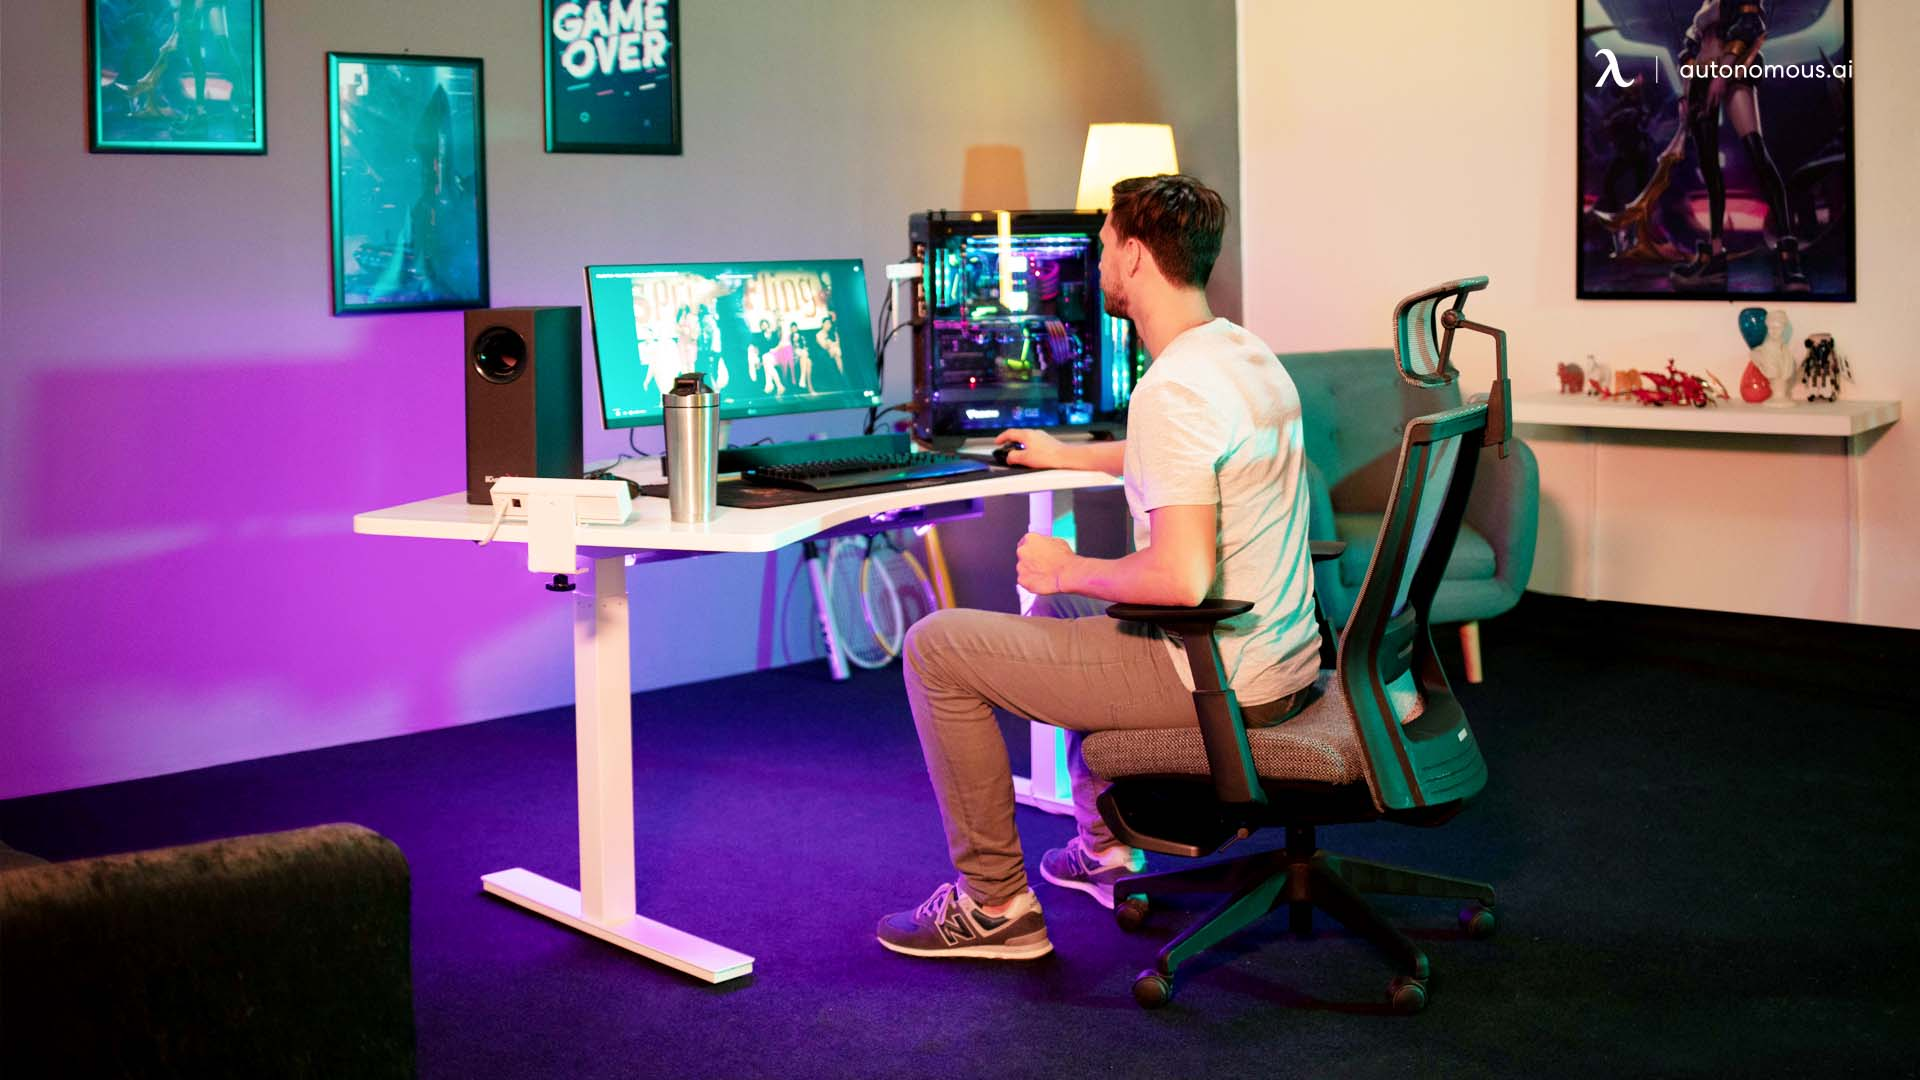 How Should the Gaming Chair Be Set-up to Get the Most of It?